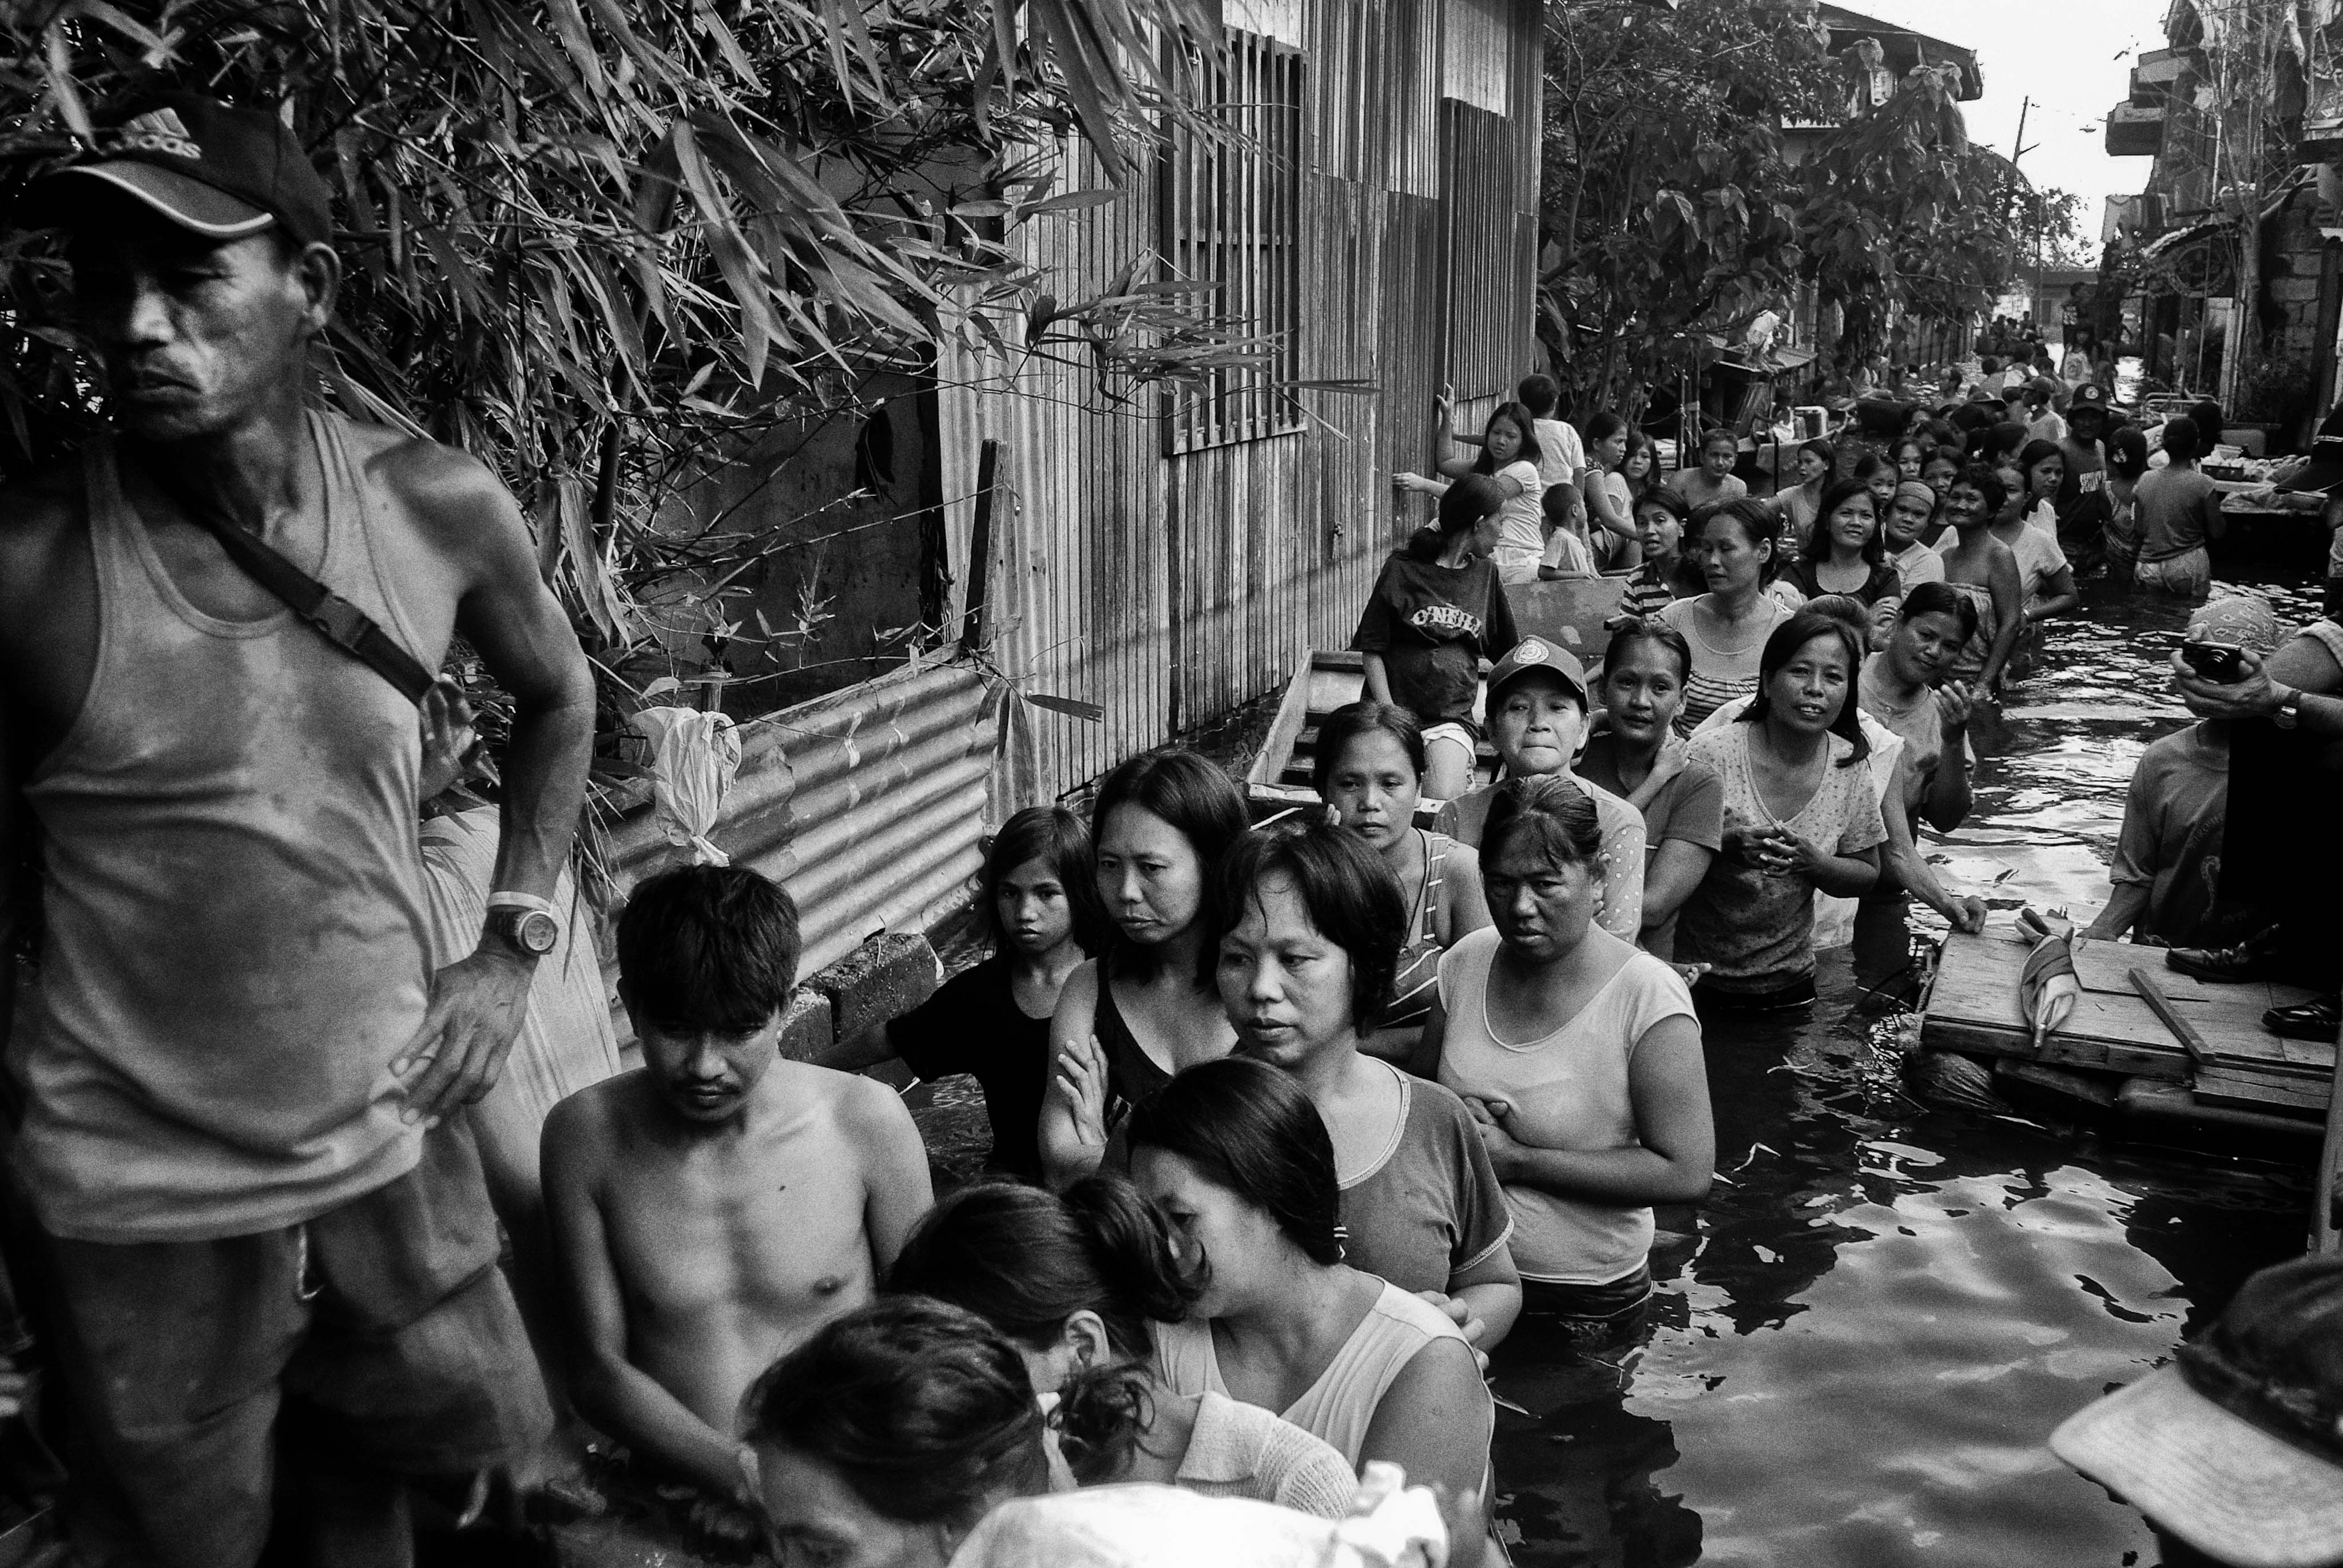 Relief packs are distributed in a flooded district of Taguig, Phillipines on Oct. 12, 2009. Typhoon Ketsana, known in the Philippines as Tropical Storm Ondoy, devastated the region in 2009.